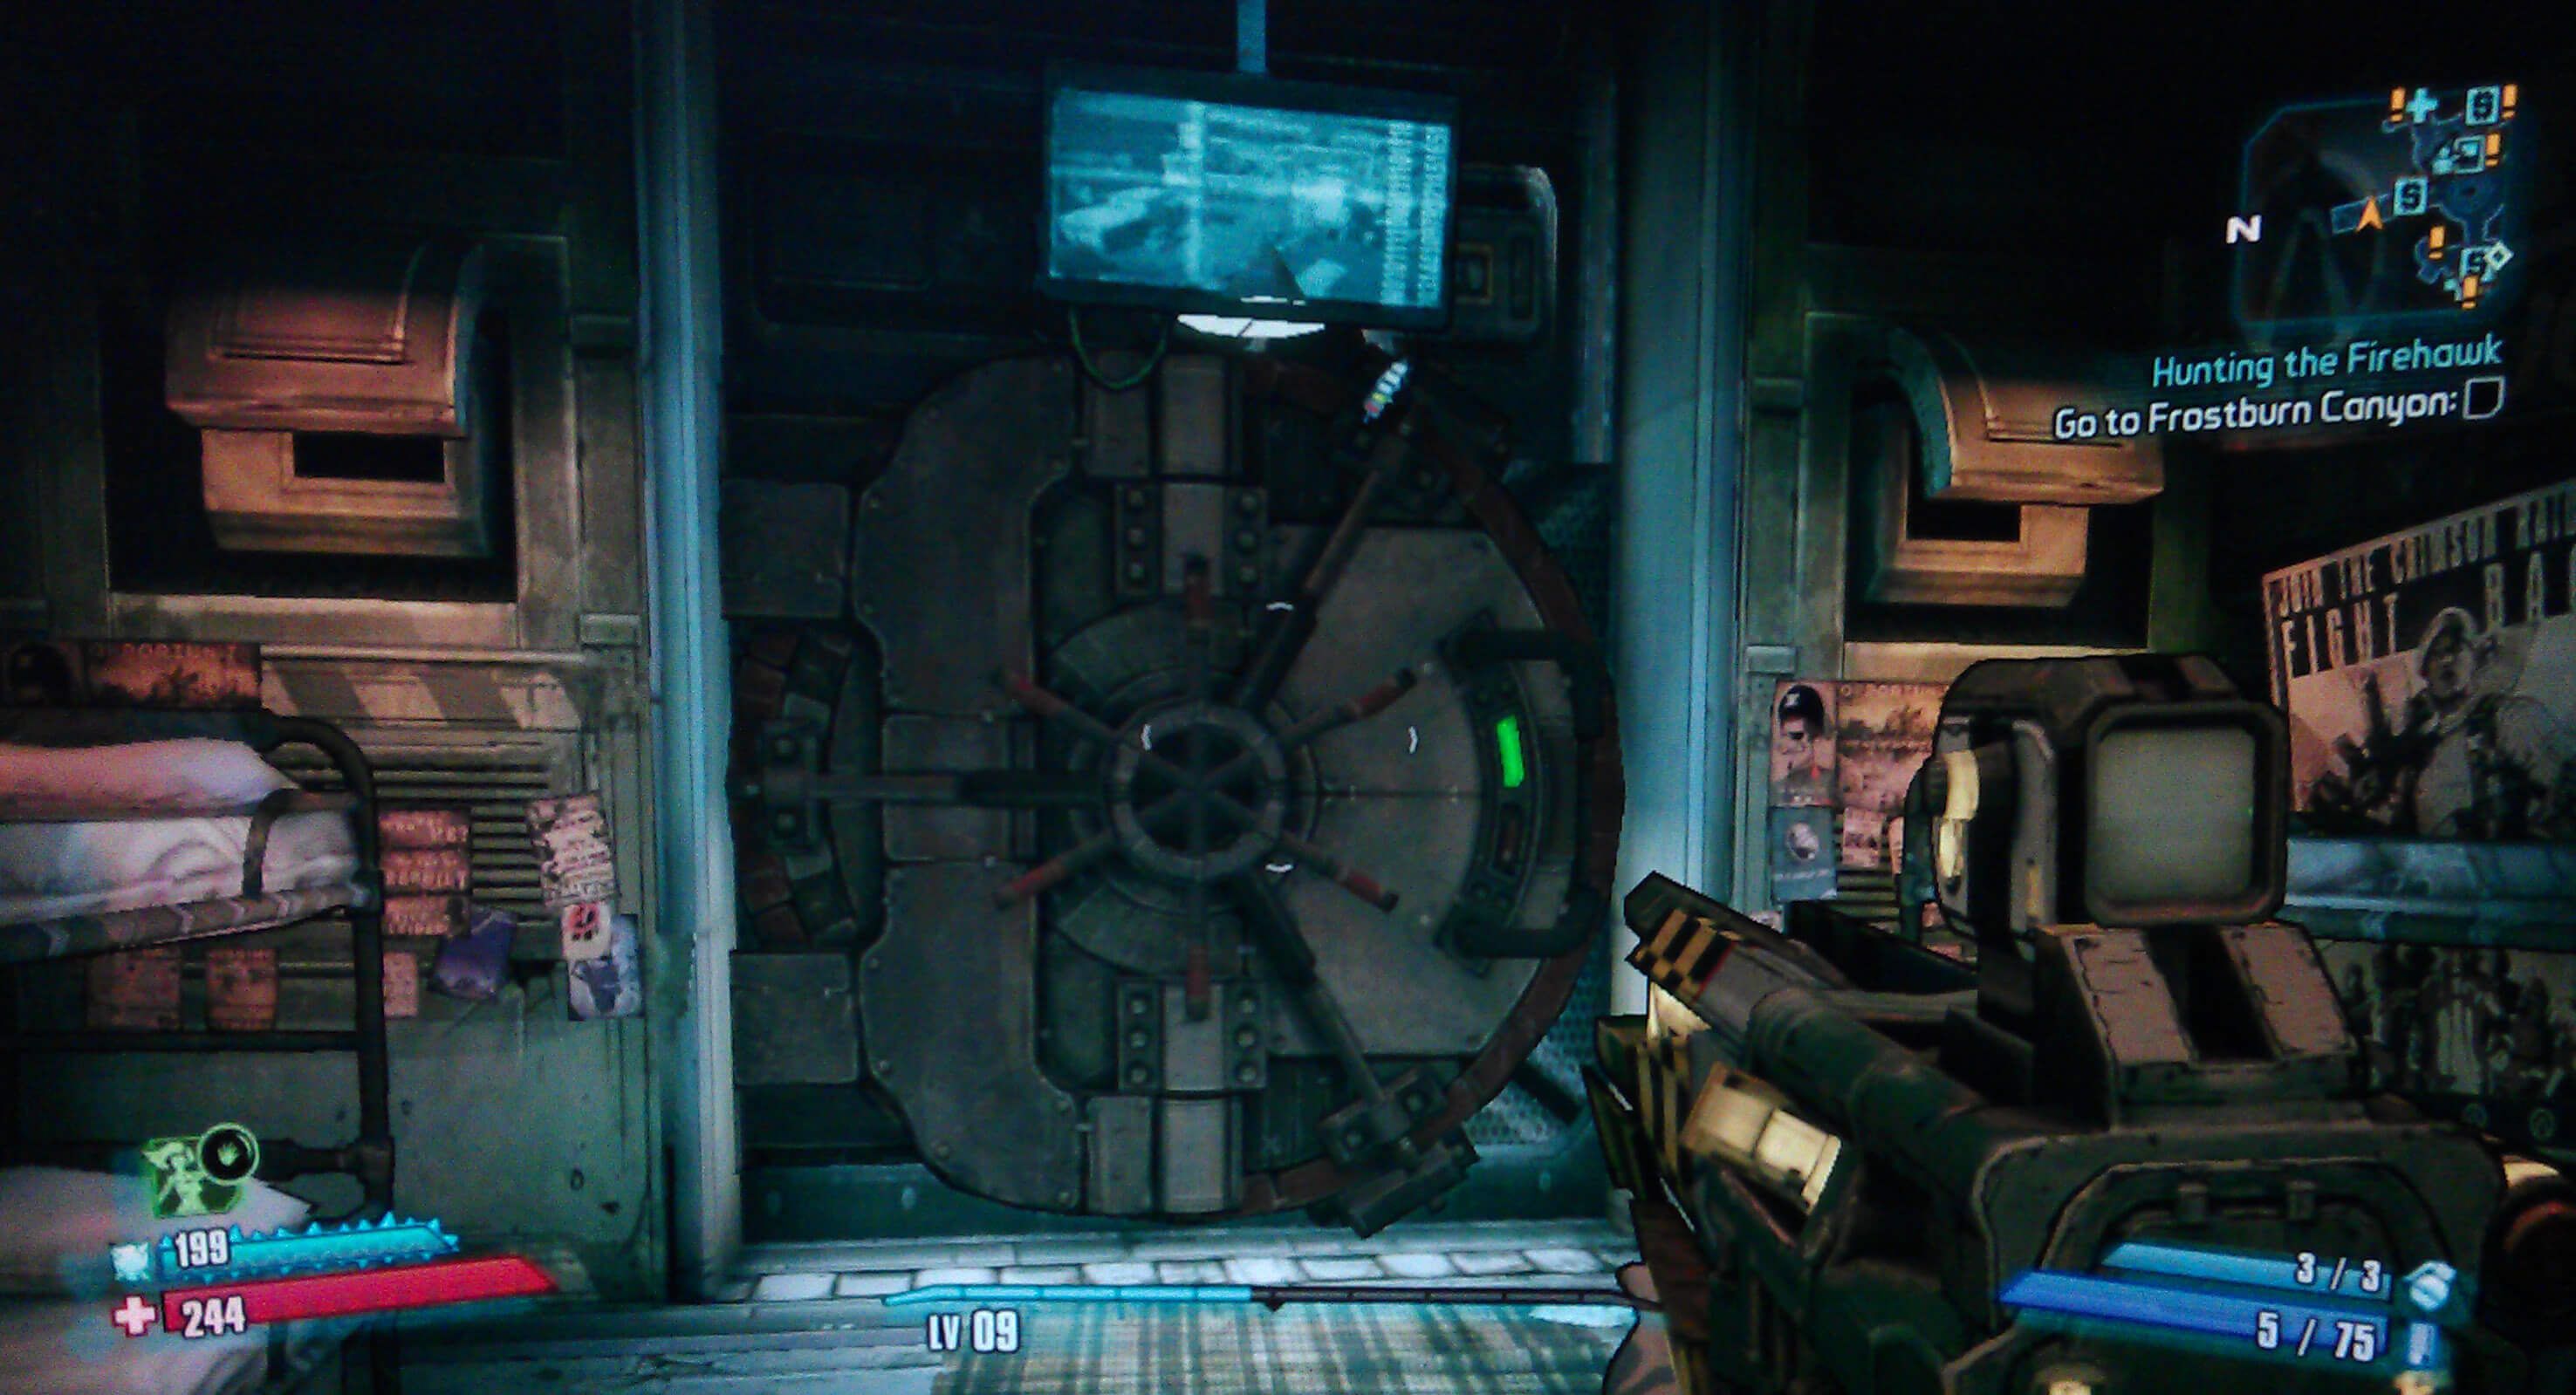 Borderlands 2 Hunting the Firehawk Walkthrough